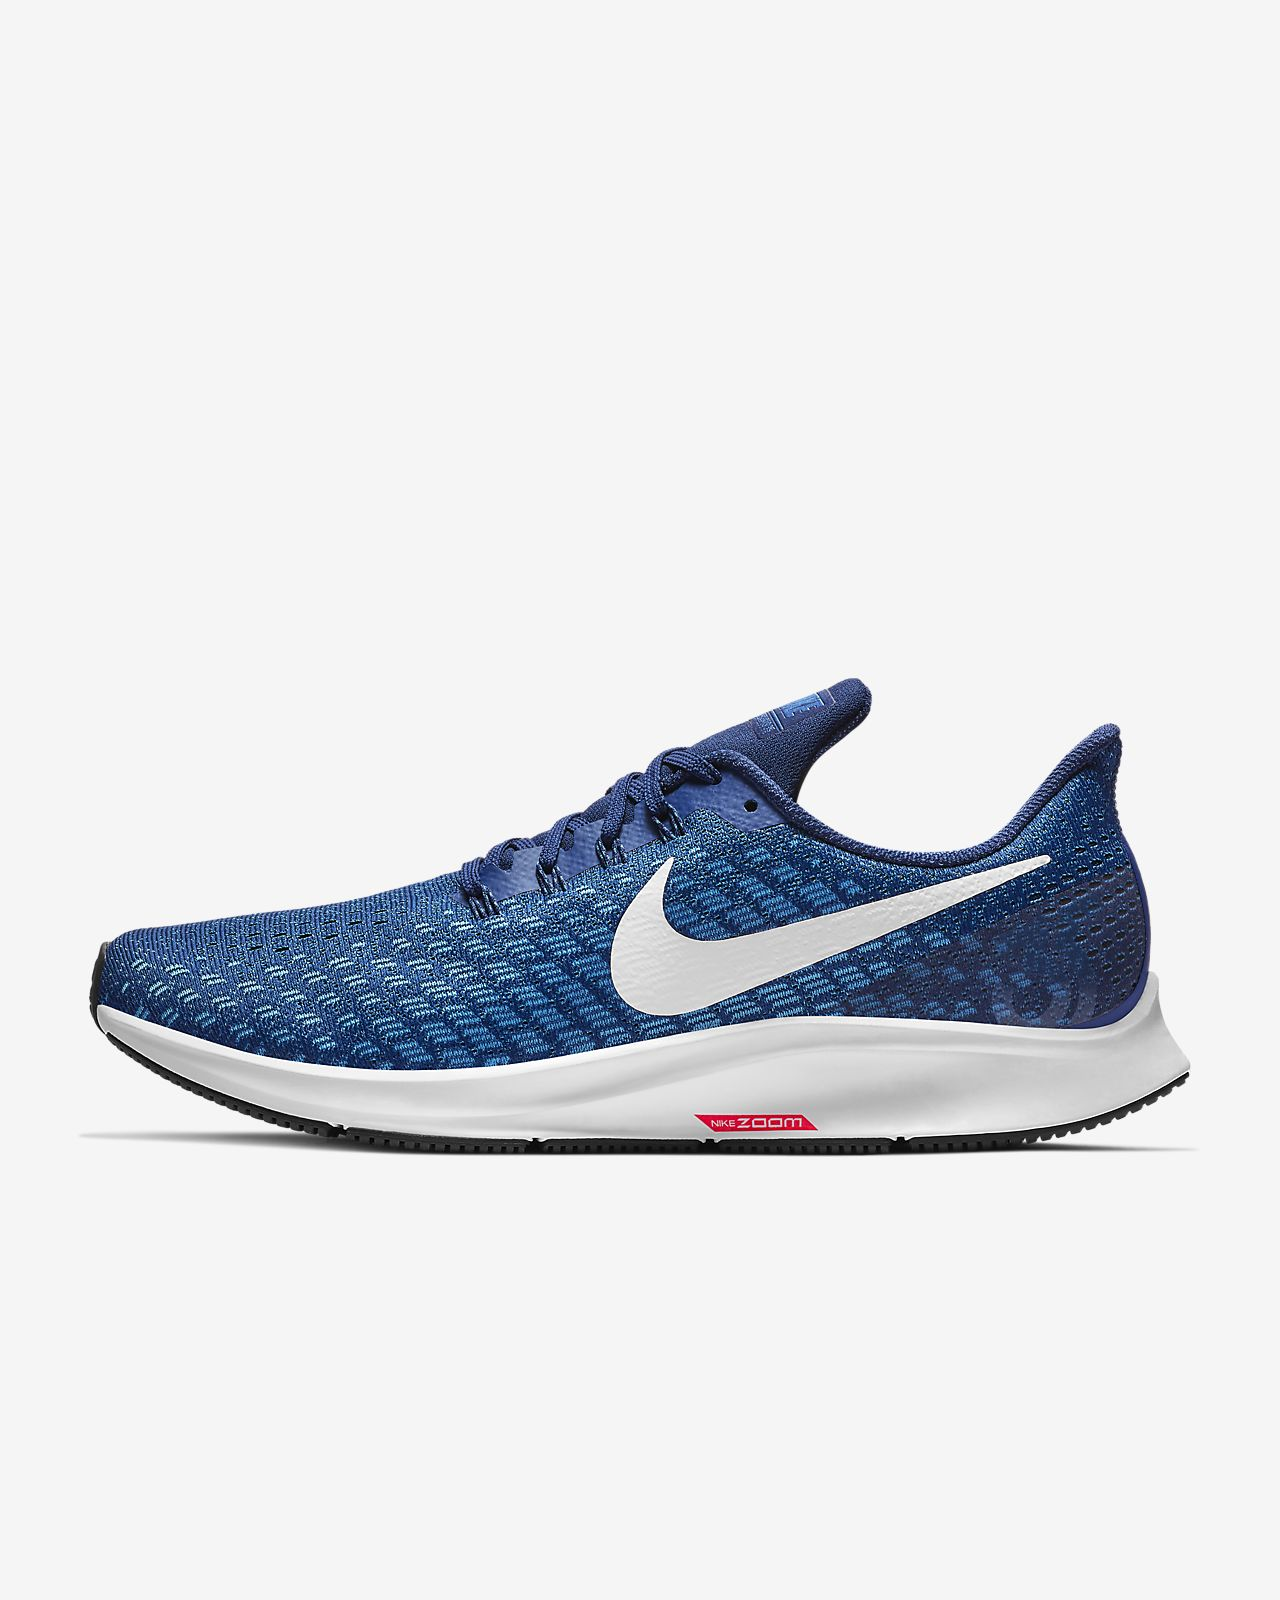 new style 5bb4e a7e88 ... Nike Air Zoom Pegasus 35 Zapatillas de running - Hombre